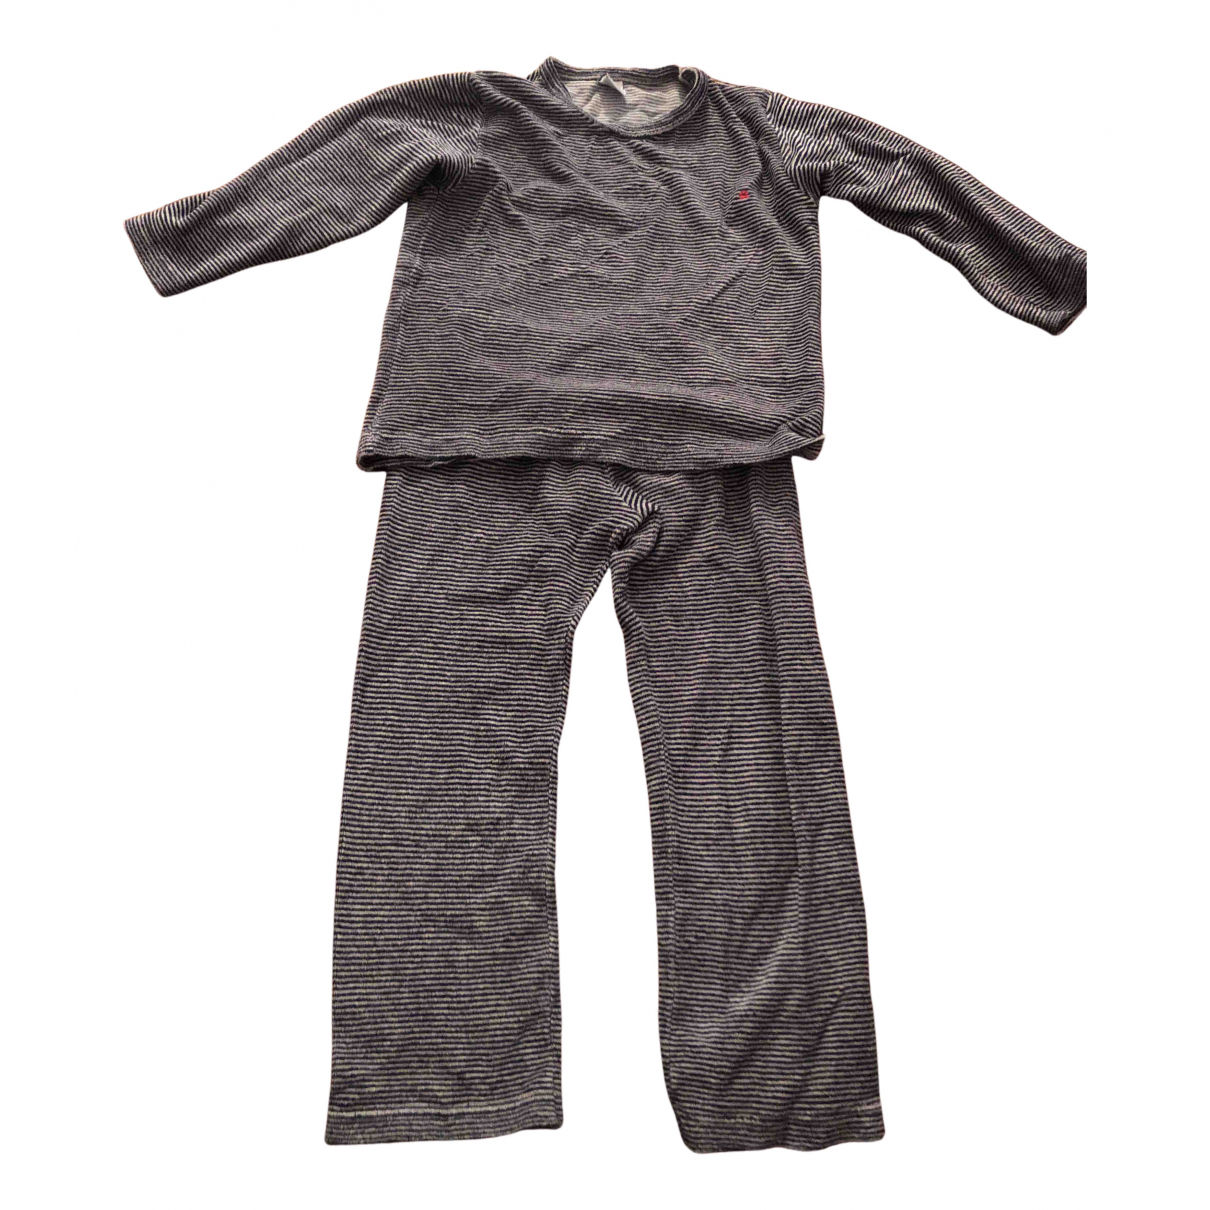 Petit Bateau N Blue Cotton Outfits for Kids 6 years - up to 114cm FR